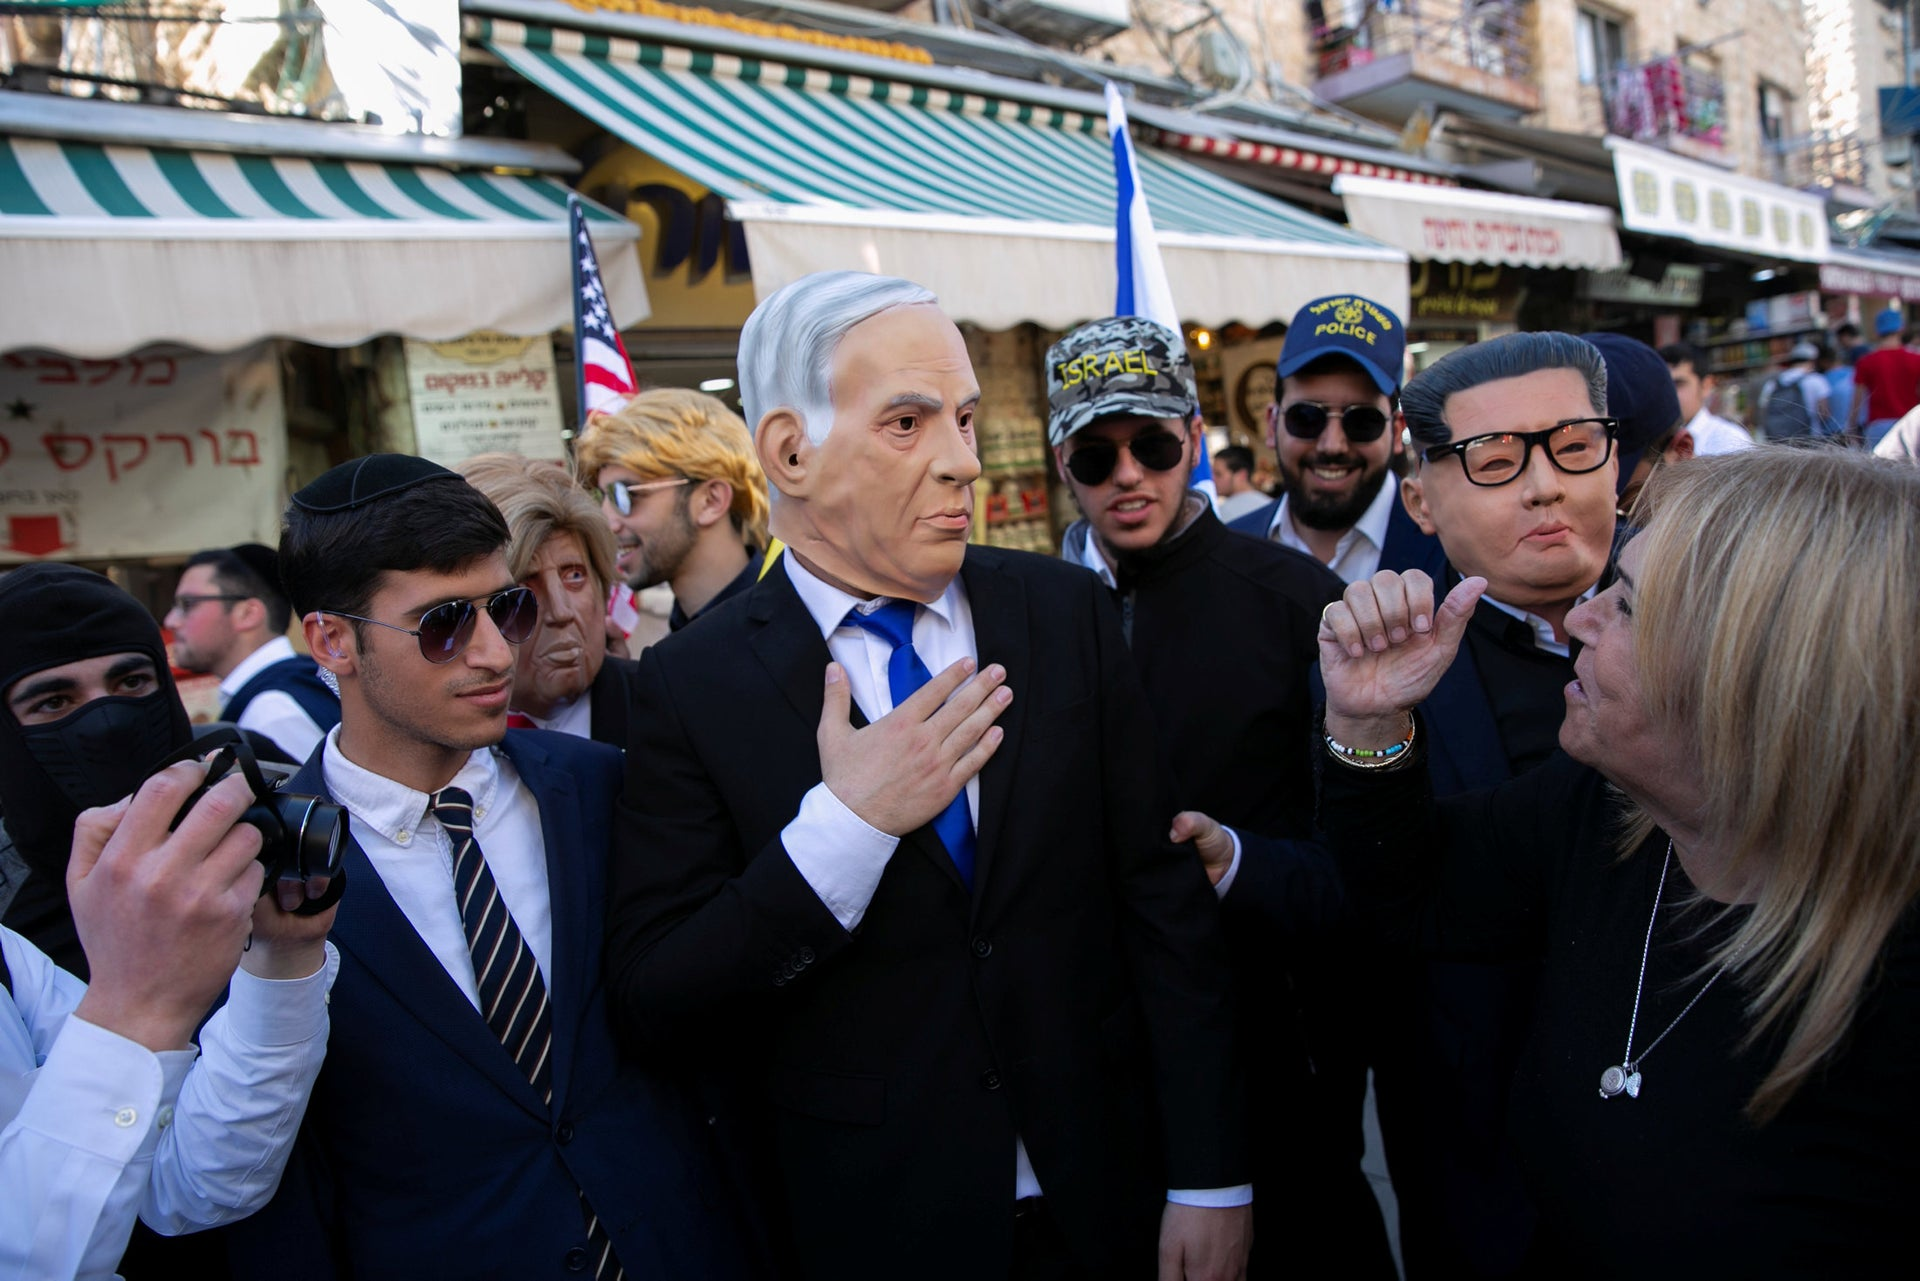 """Benjamin Netanyahu"" touring the Mahane Yehuda market in Jerusalem during a Purim celebration, March 19, 2019."